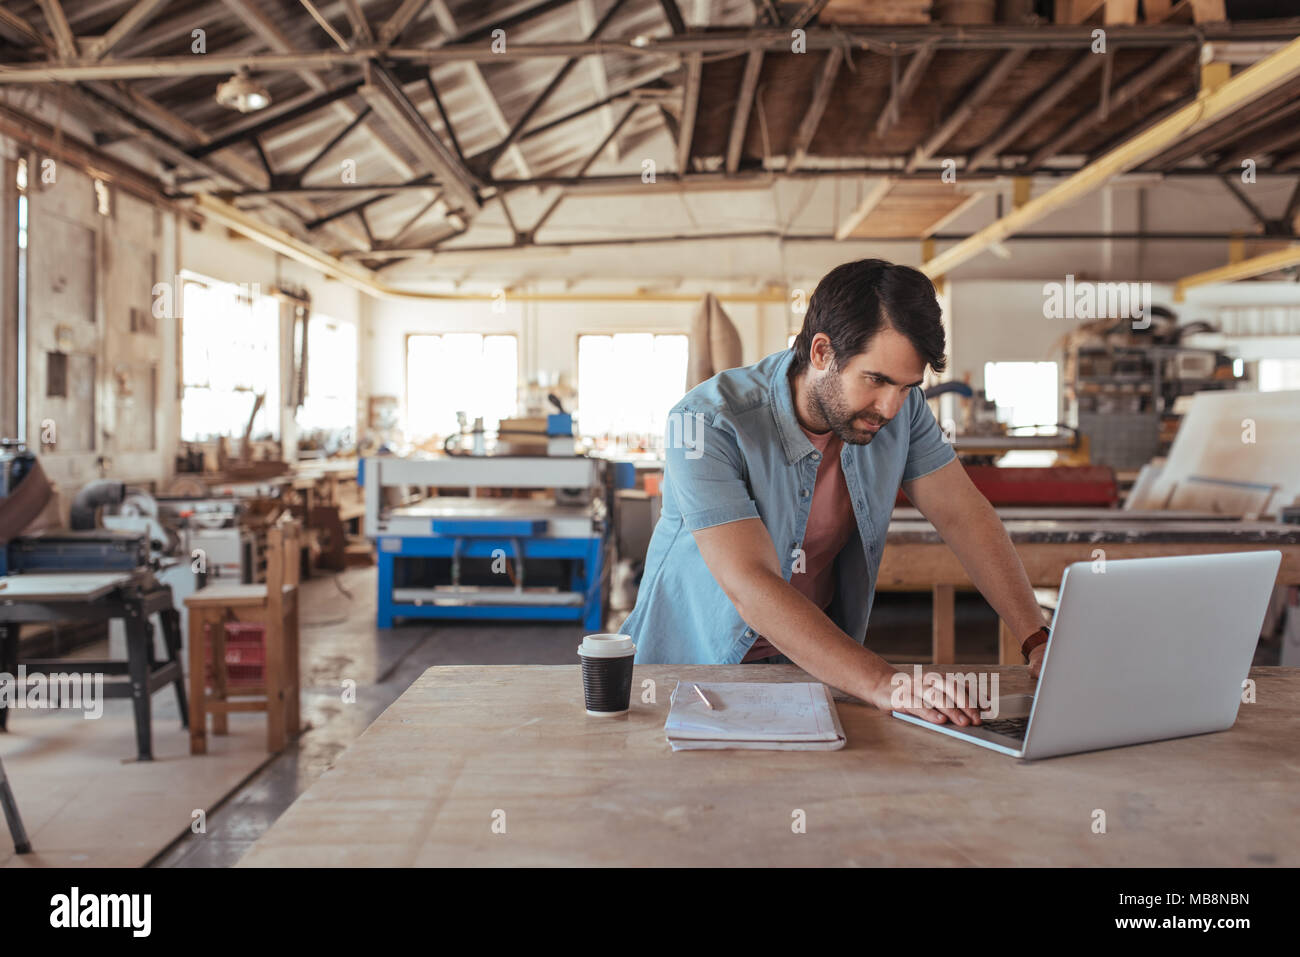 Young woodworker using a laptop in his workshop - Stock Image